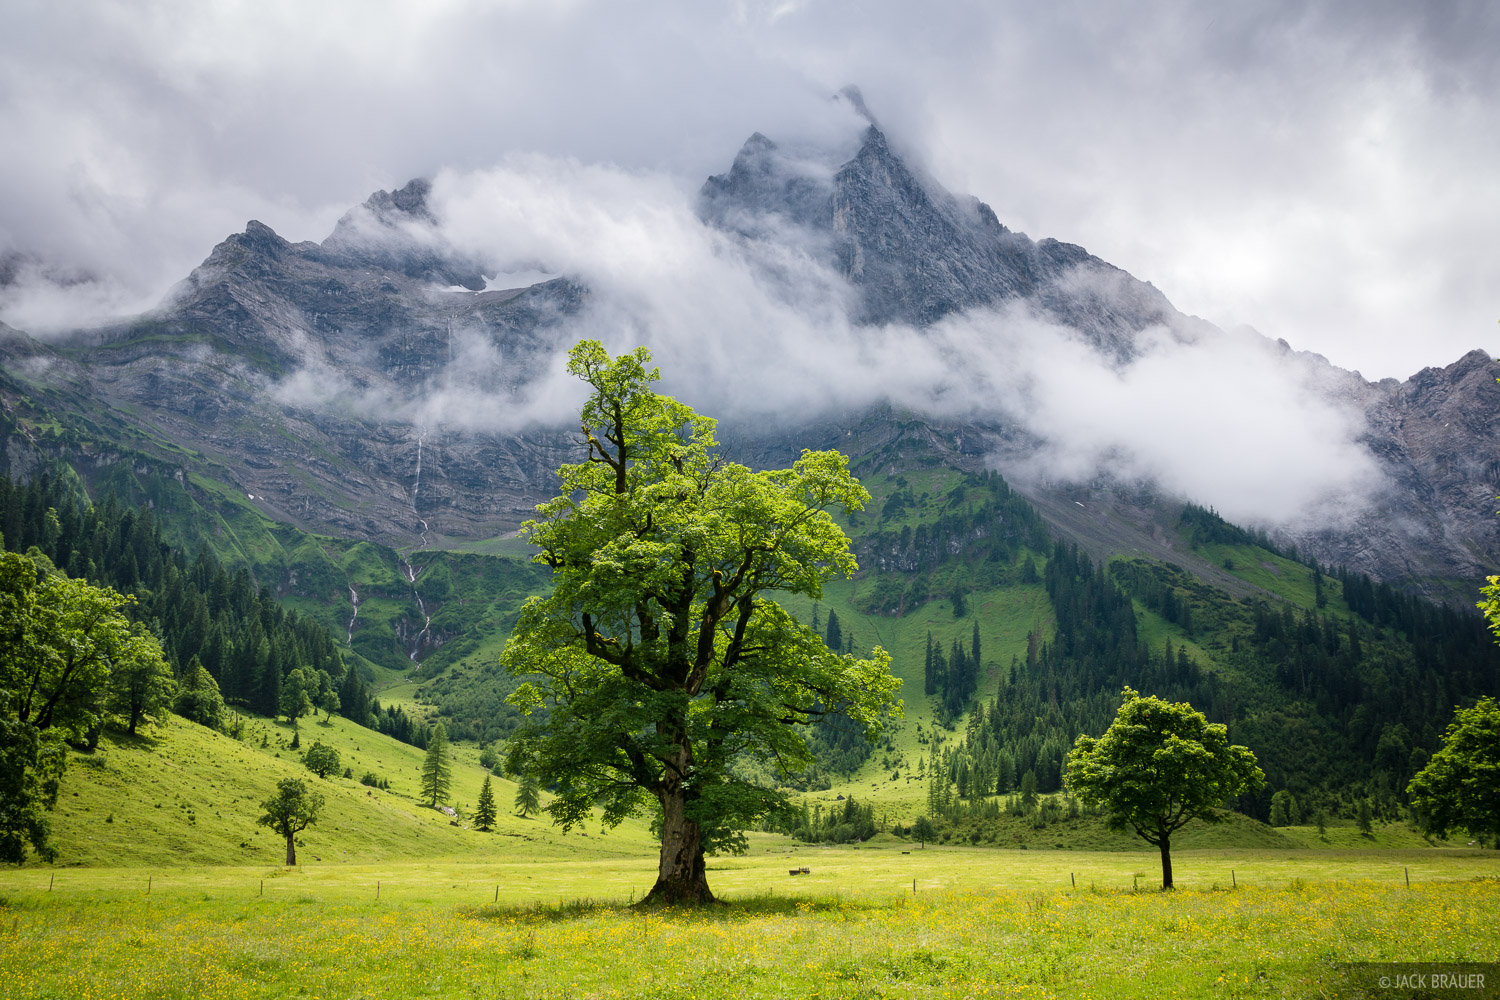 Austria, Engalm, Karwendel, Alps, Spritzkarspitze, Engtal, Eng Alm, maple tree, photo